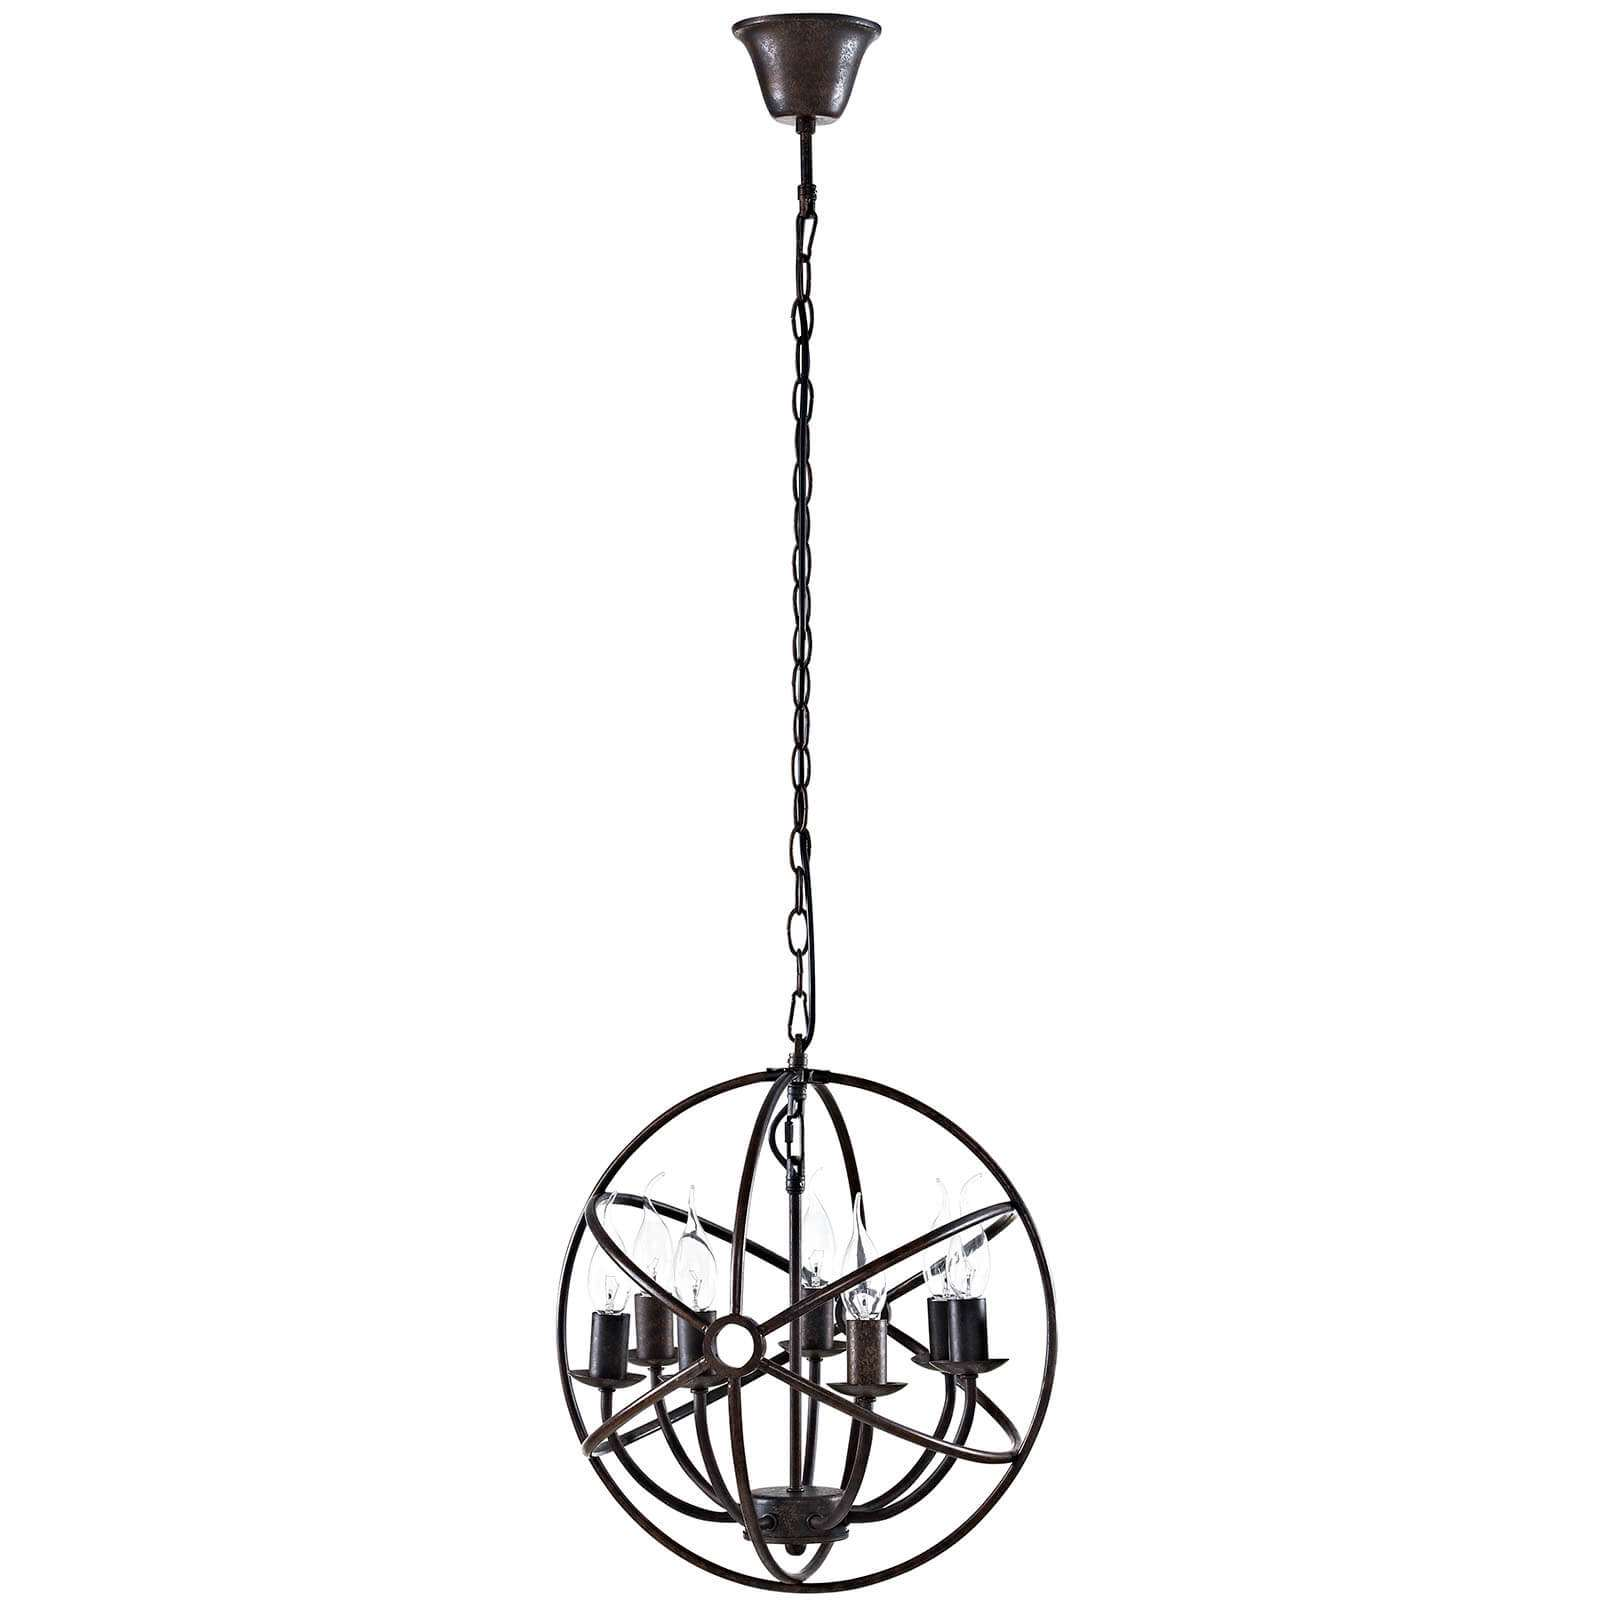 Industrial hanging lights front view